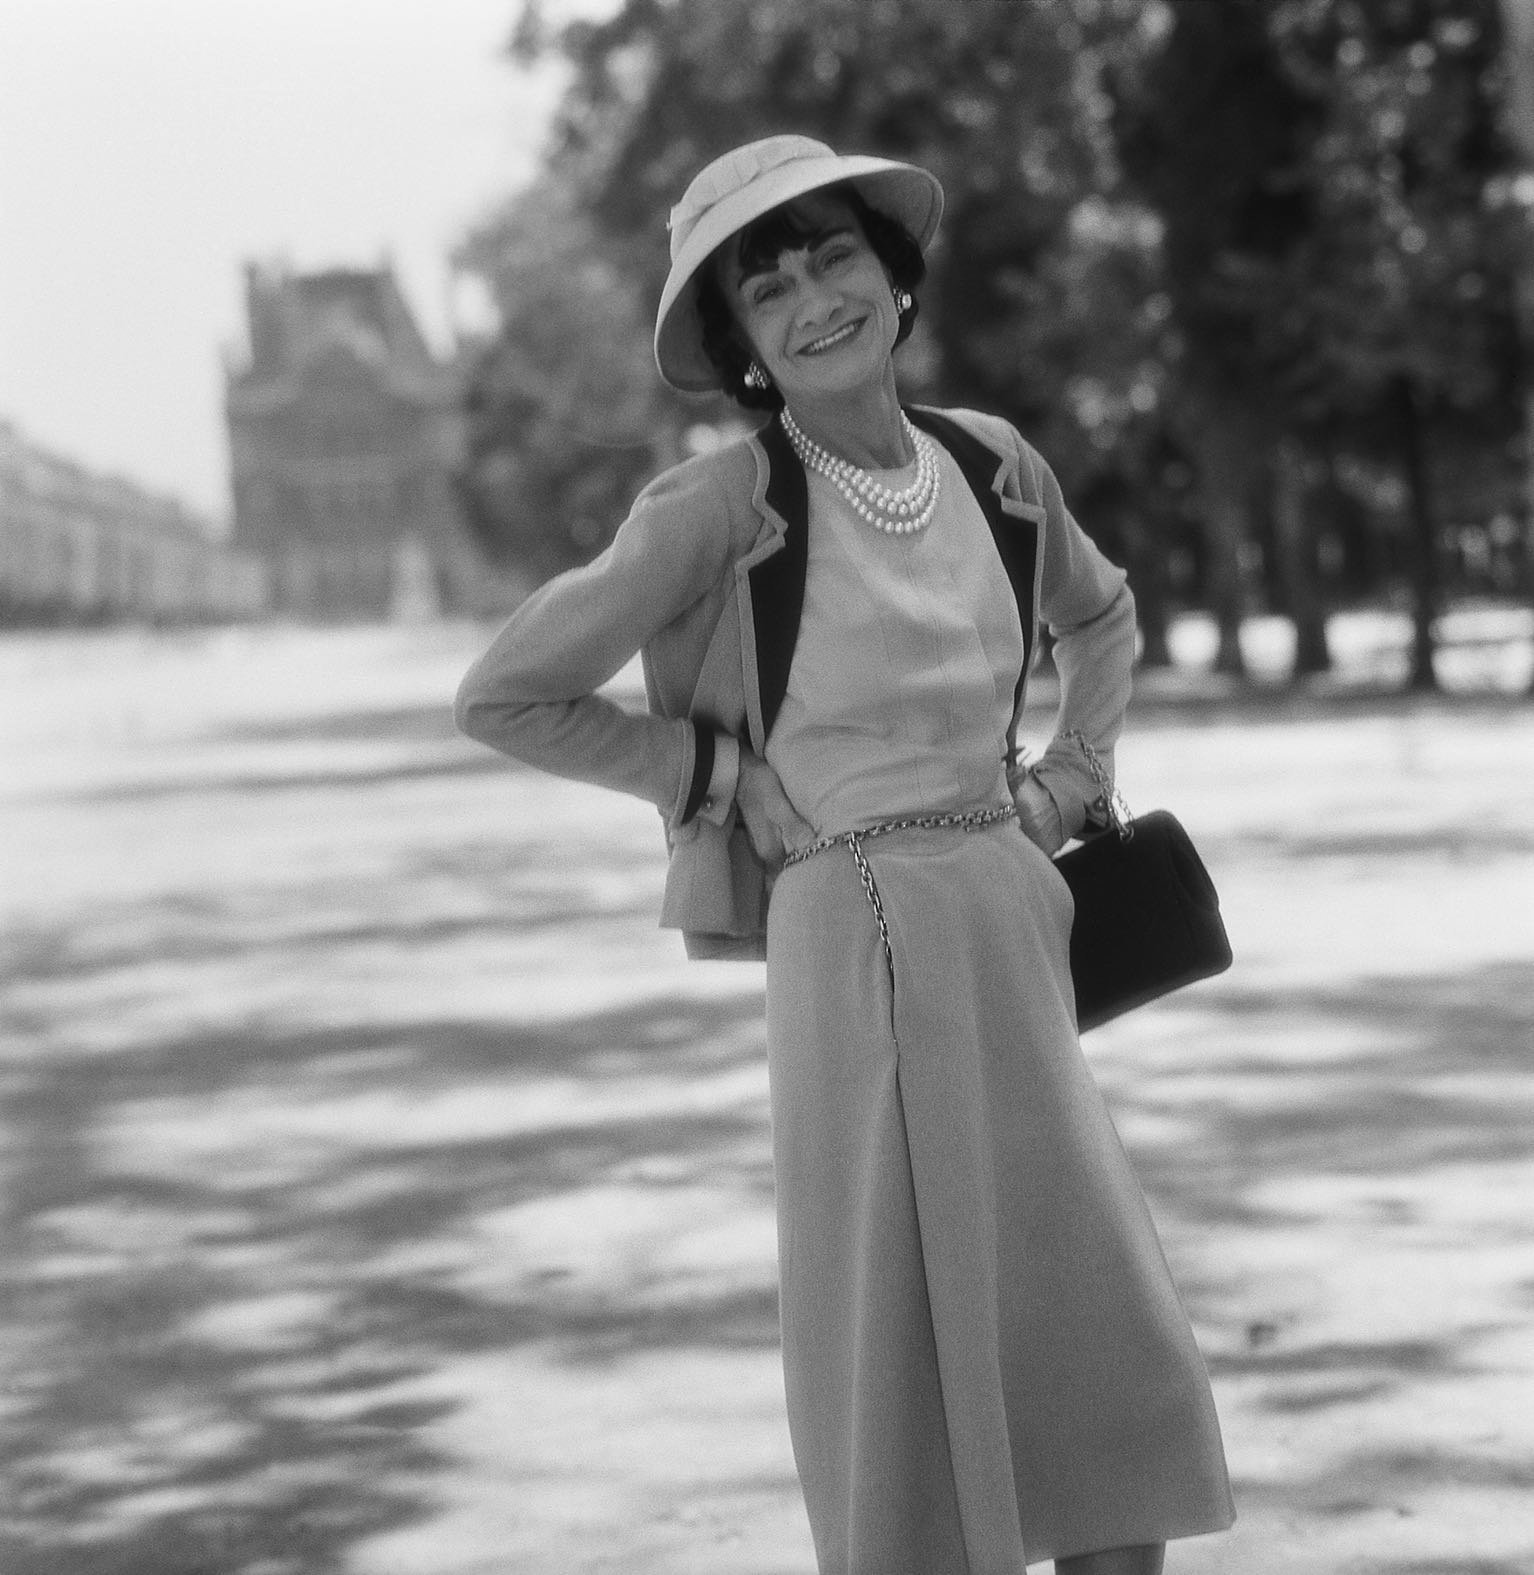 Mademoiselle Chanel in the Tuilleries, Paris, 1955